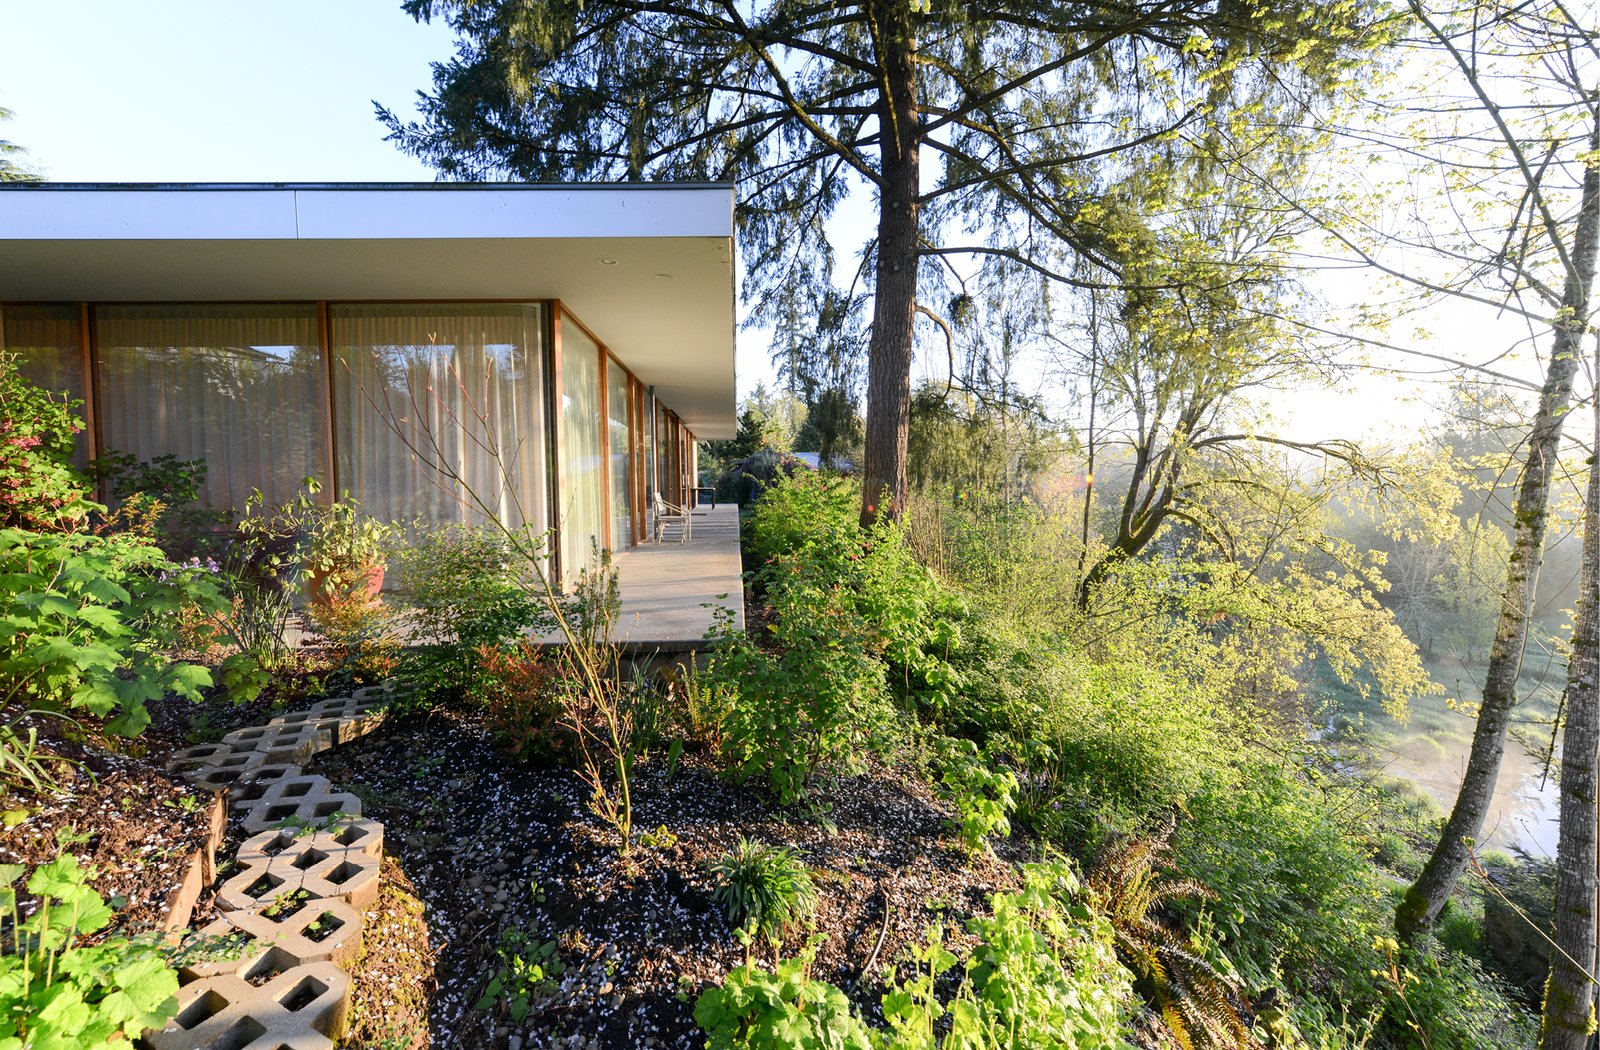 Set on an urban in-fill lot at the edge of a terrace escarpment overlooking protected  wetlands and a wild river, the Courtyard House weaves between natural and urban contexts.  The Courtyard House